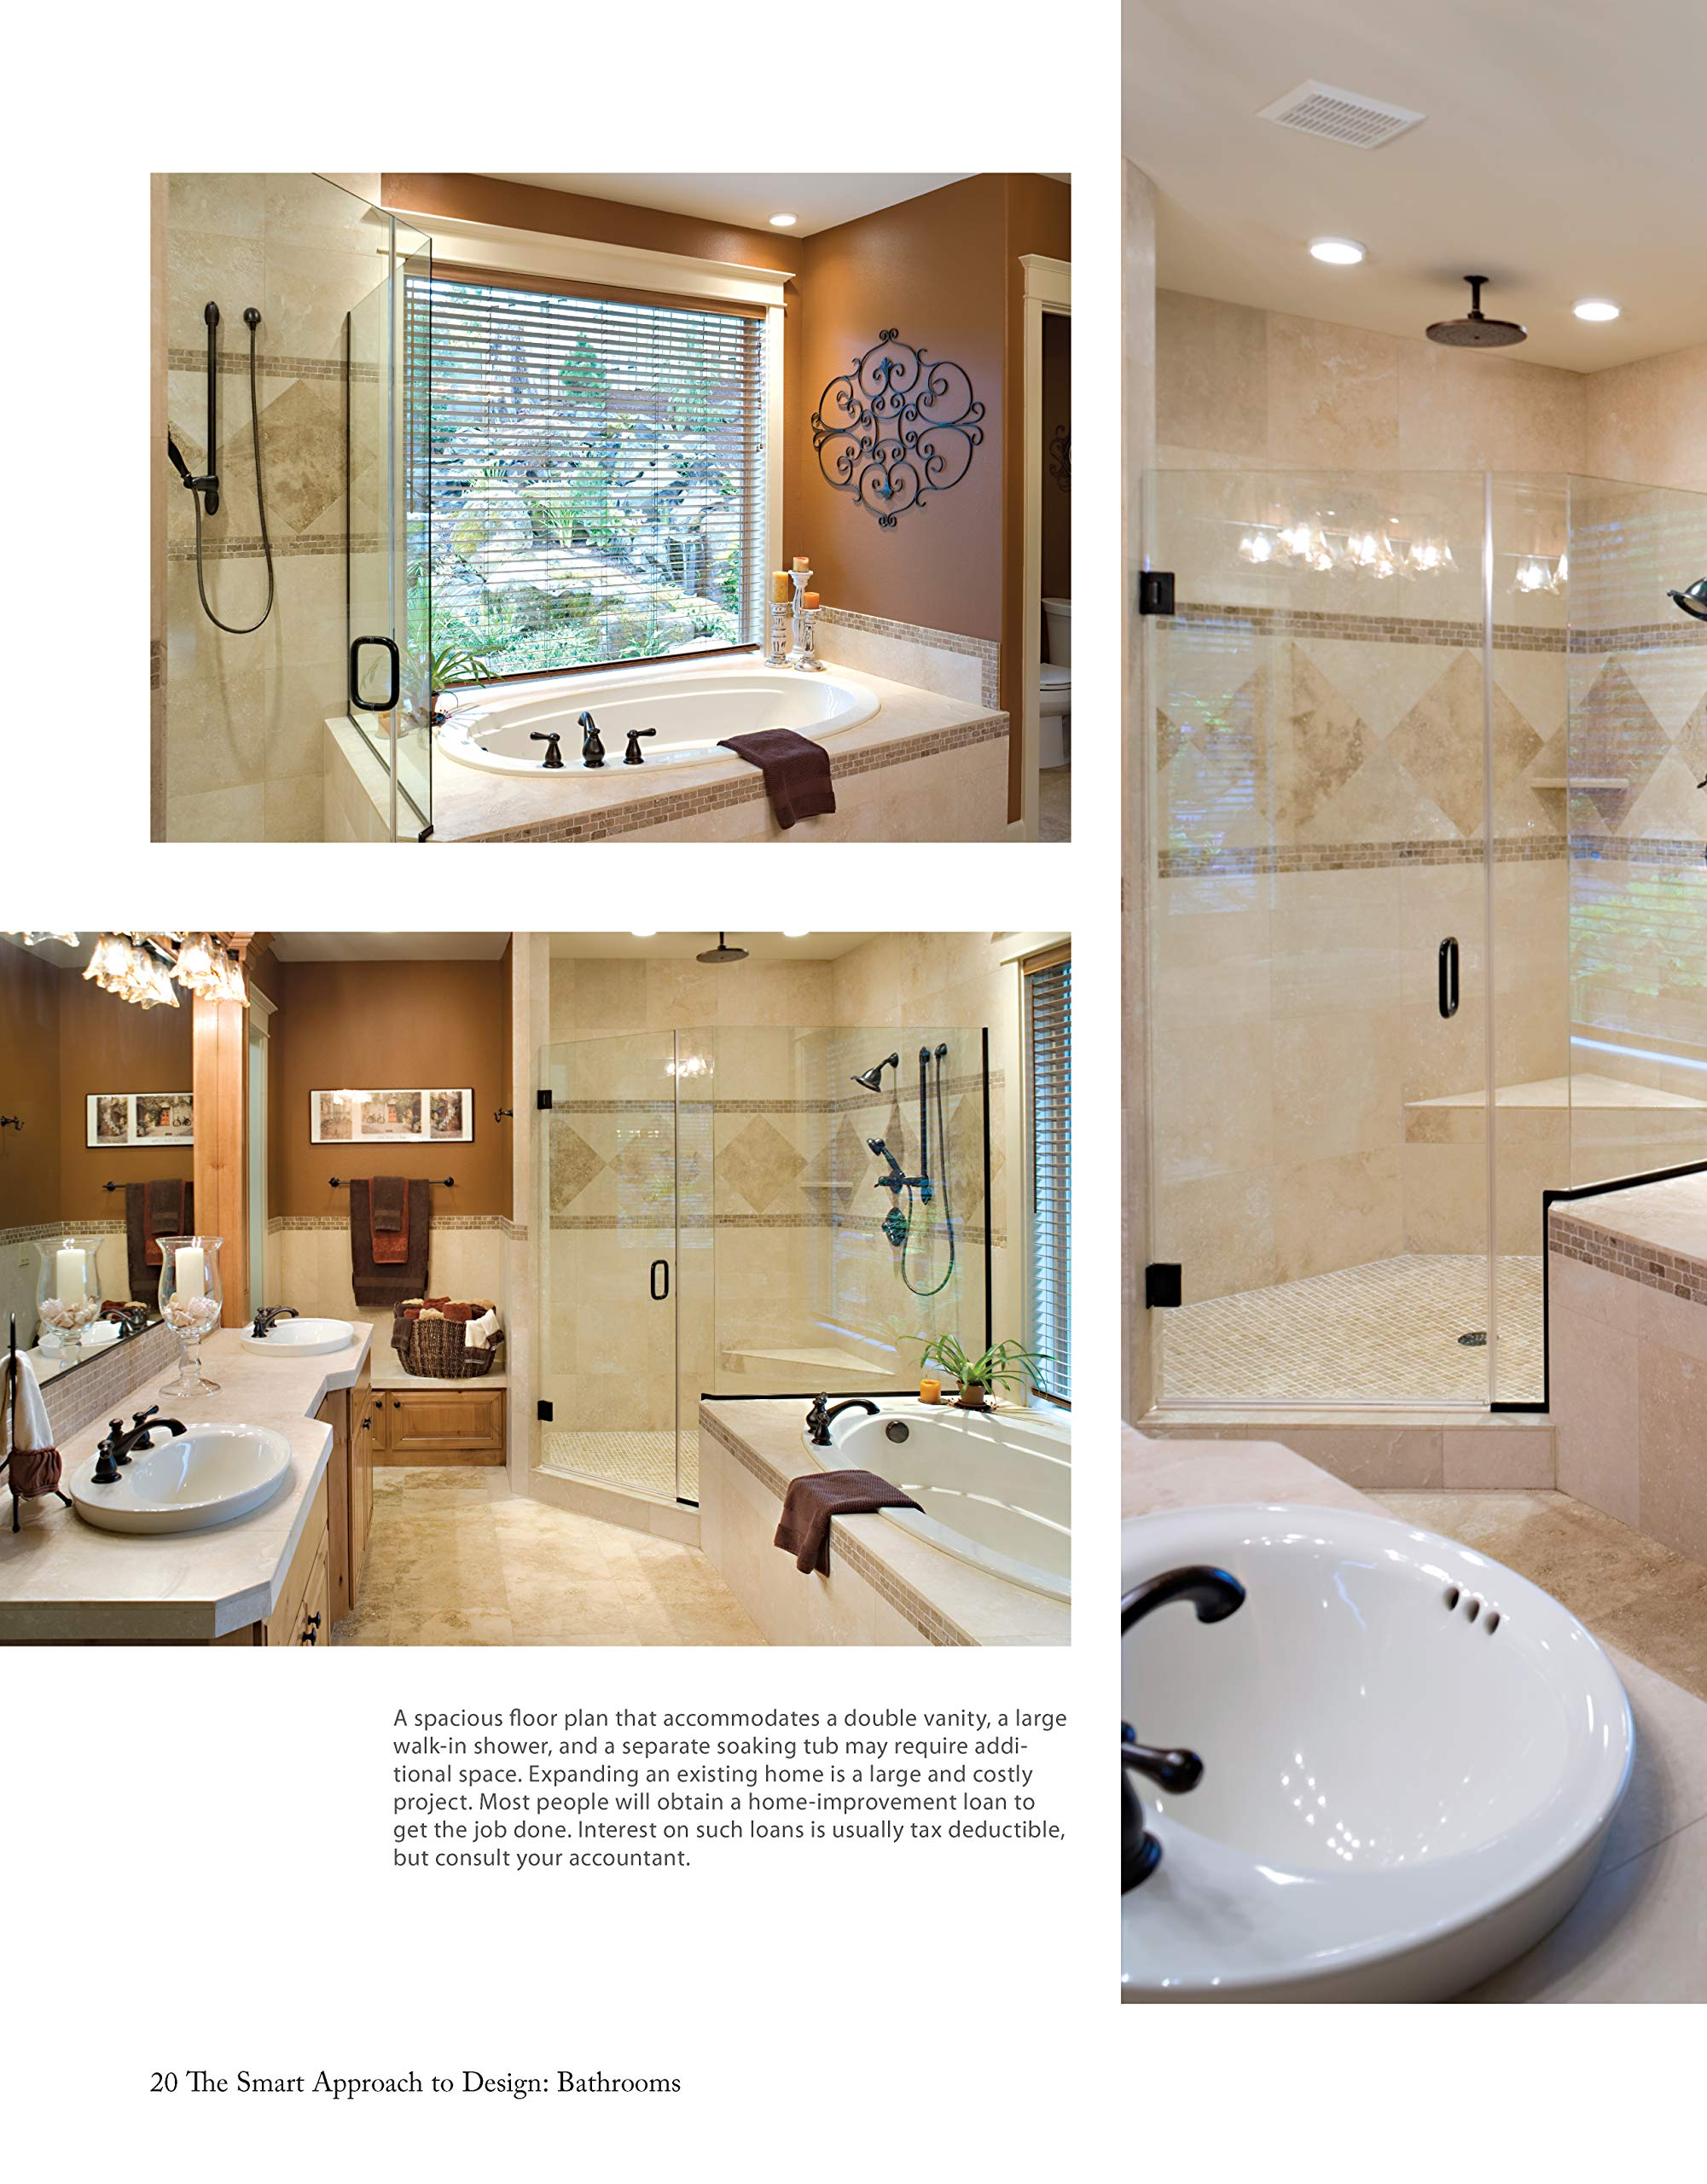 Bathrooms Revised Updated 2nd Edition Complete Design Ideas To Modernize Your Bathroom Creative Homeowner 350 Photos Plan Every Aspect Of Your Dream Project Smart Approach To Design Editors Of Creative Homeowner